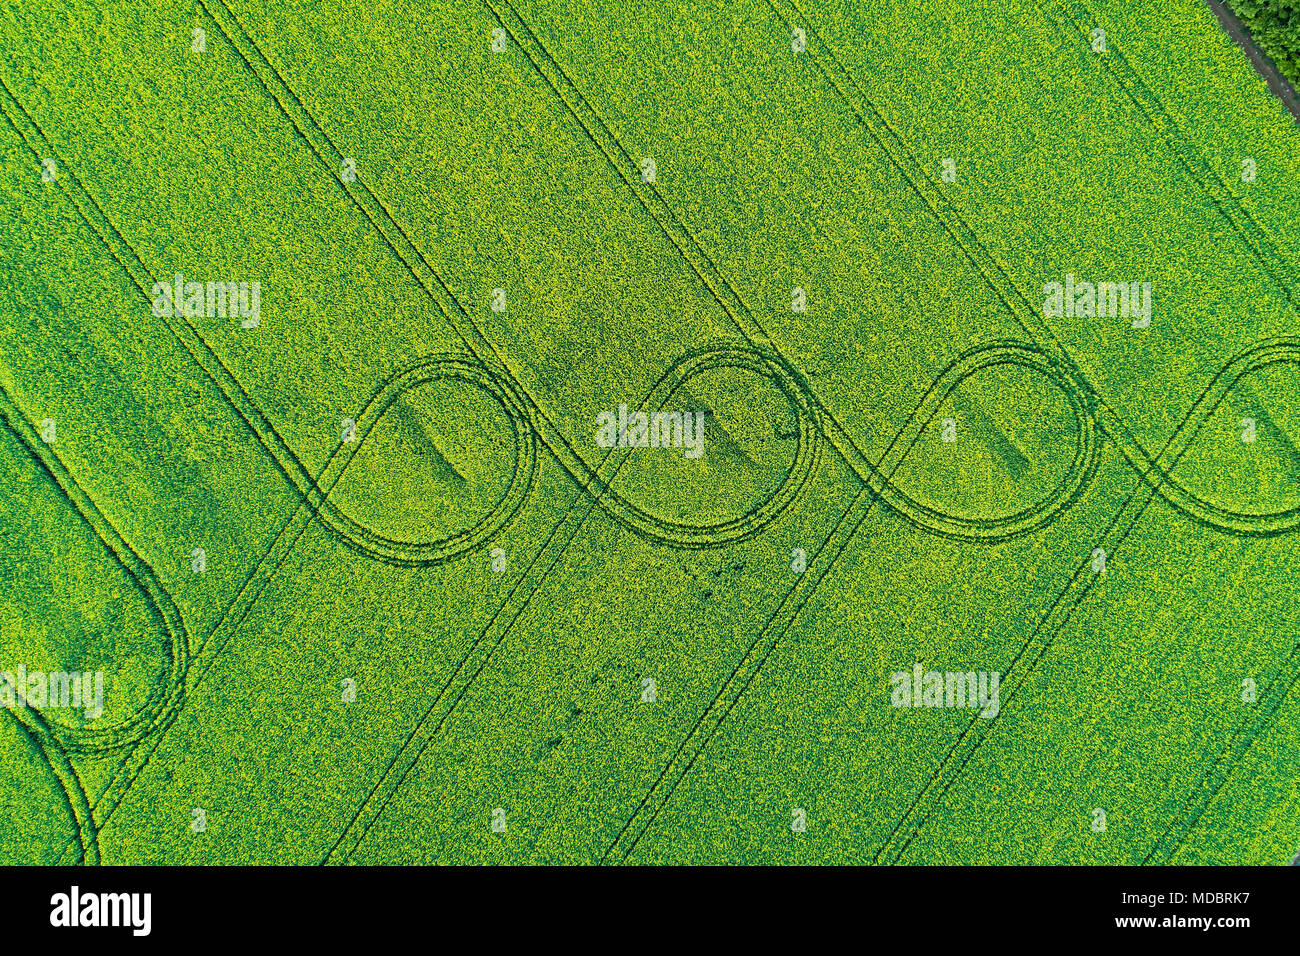 Tire tracks in yellow rapeseed field, near Methven, Mid Canterbury, South Island, New Zealand - drone aerial - Stock Image